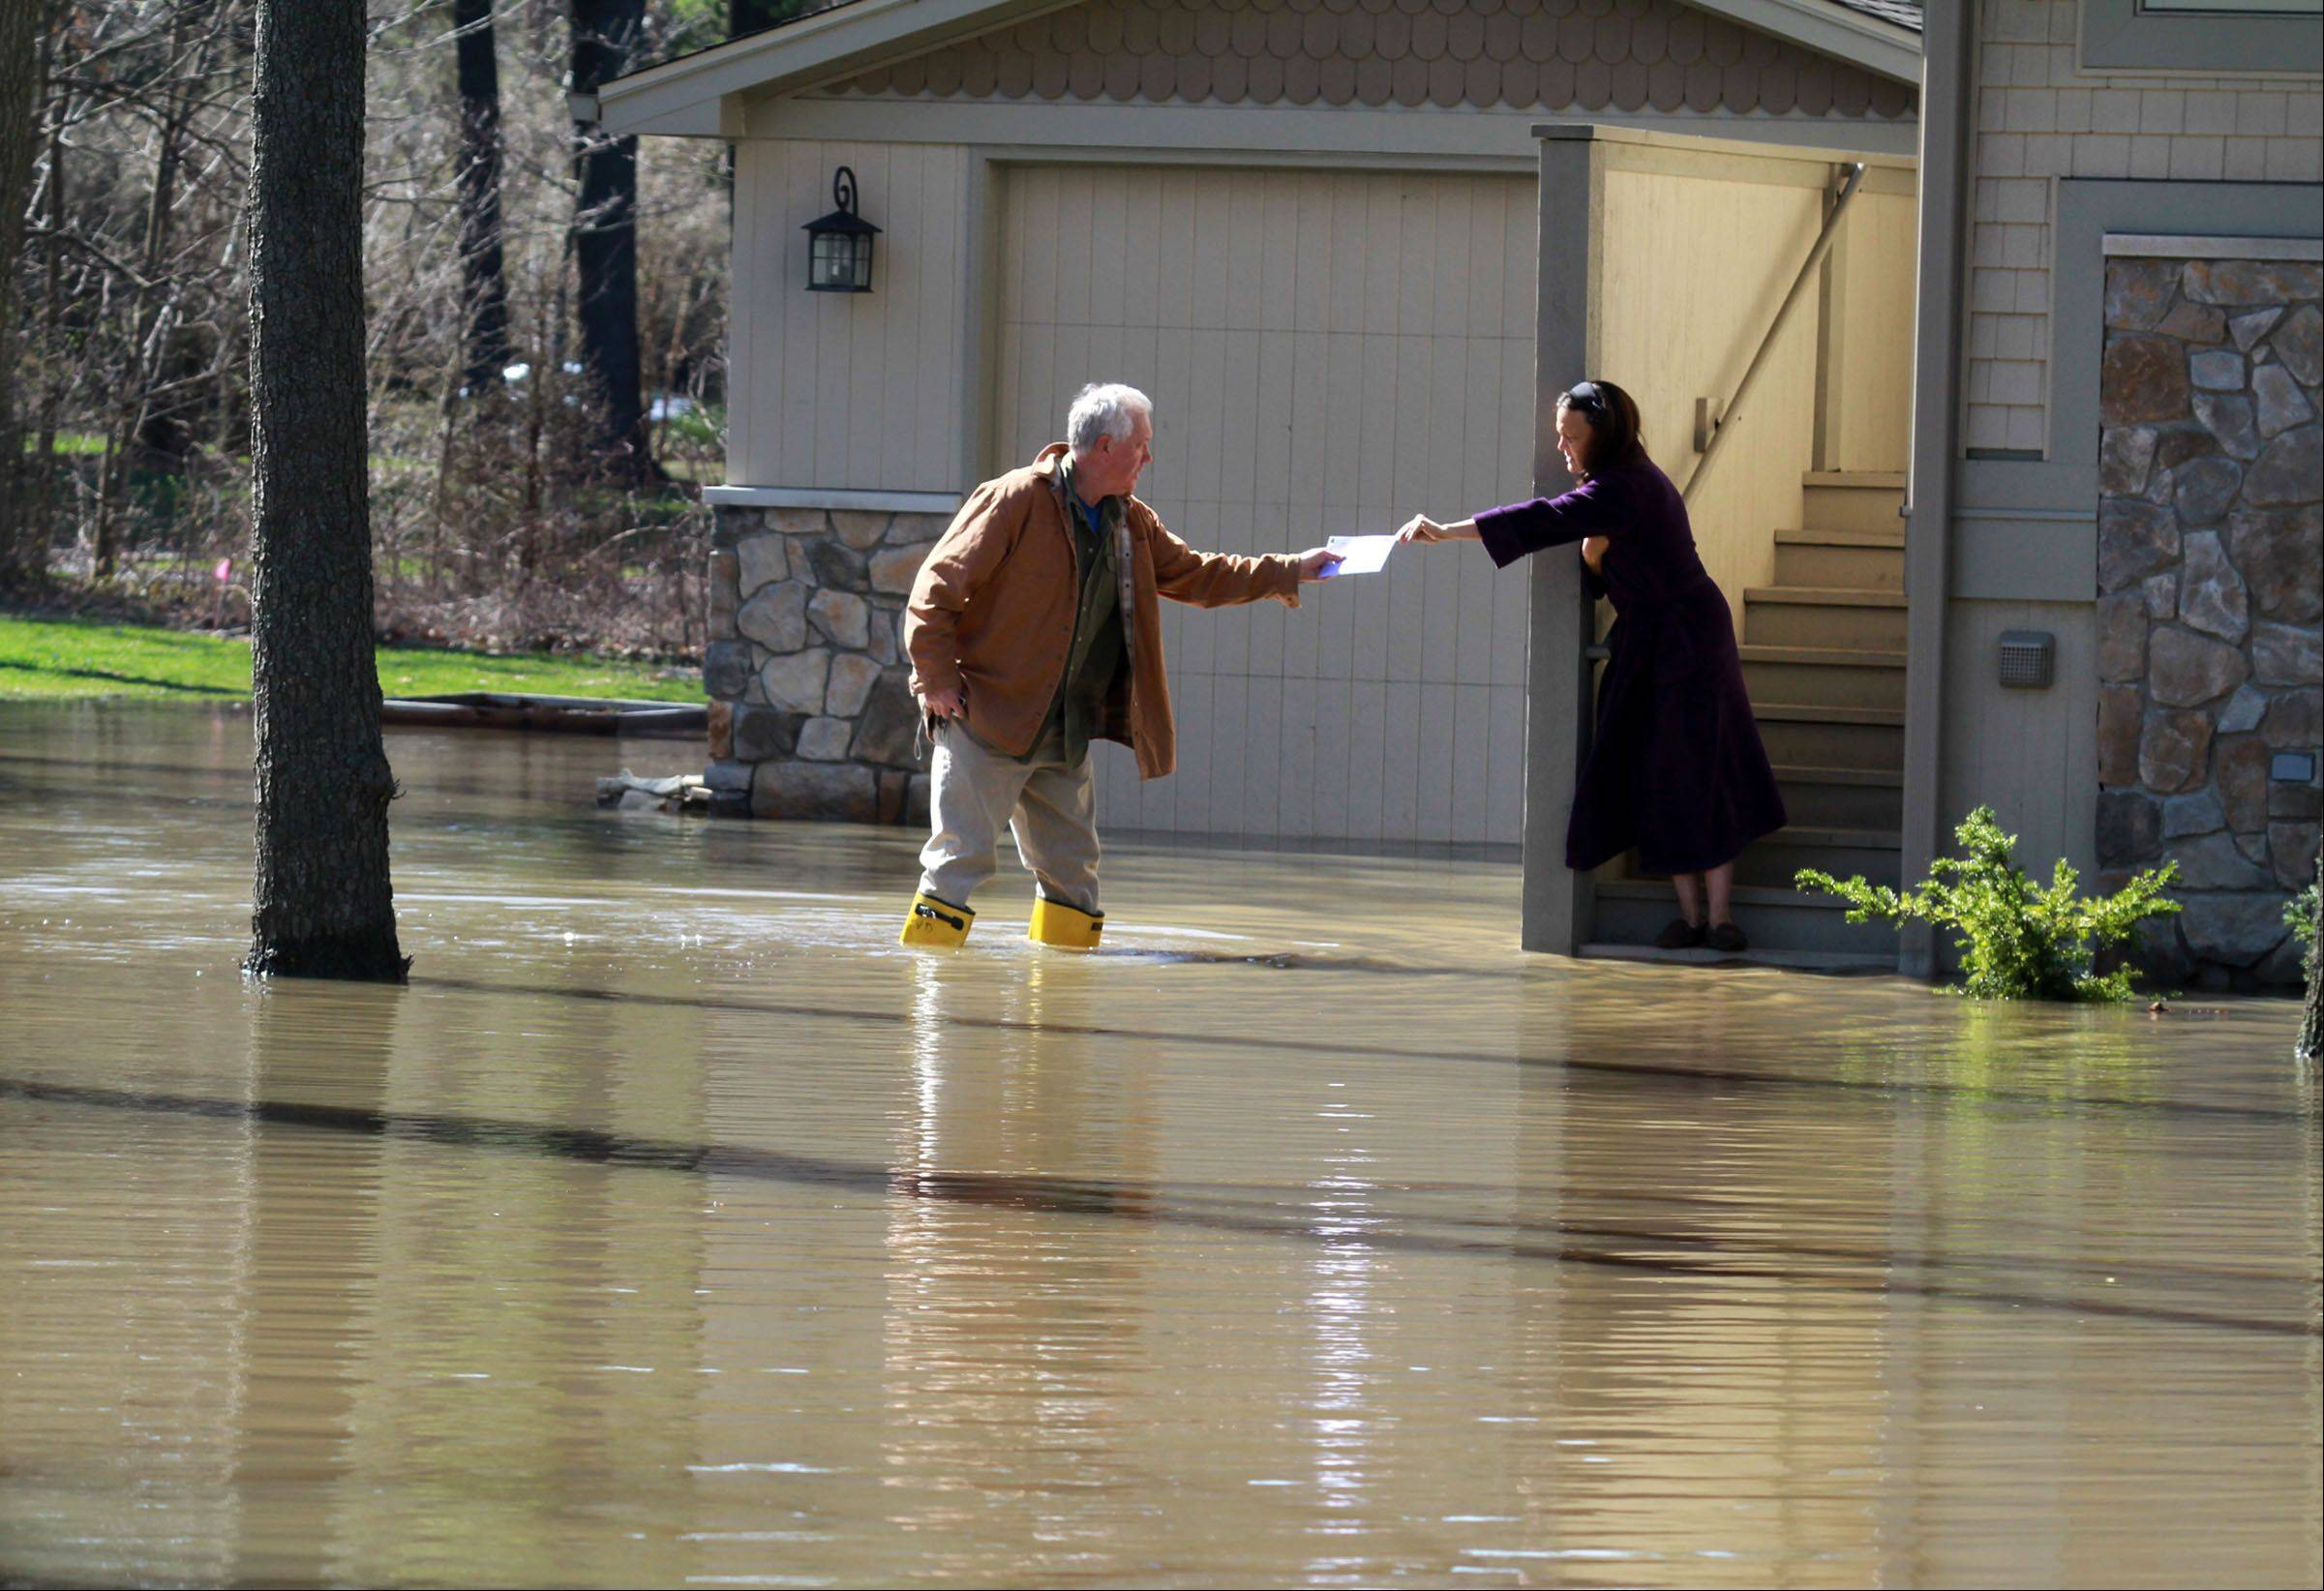 George LeClaire/gleclaire@dailyherald.comMichelle VanDuynhoven gives her husband, John, a letter to mail at the bottom of the steps to their home on Stonegate Circle in Lincolnshire on Saturday, April 20, 2013. John said there was no water in their house because they rebuilt it higher up in 2010.